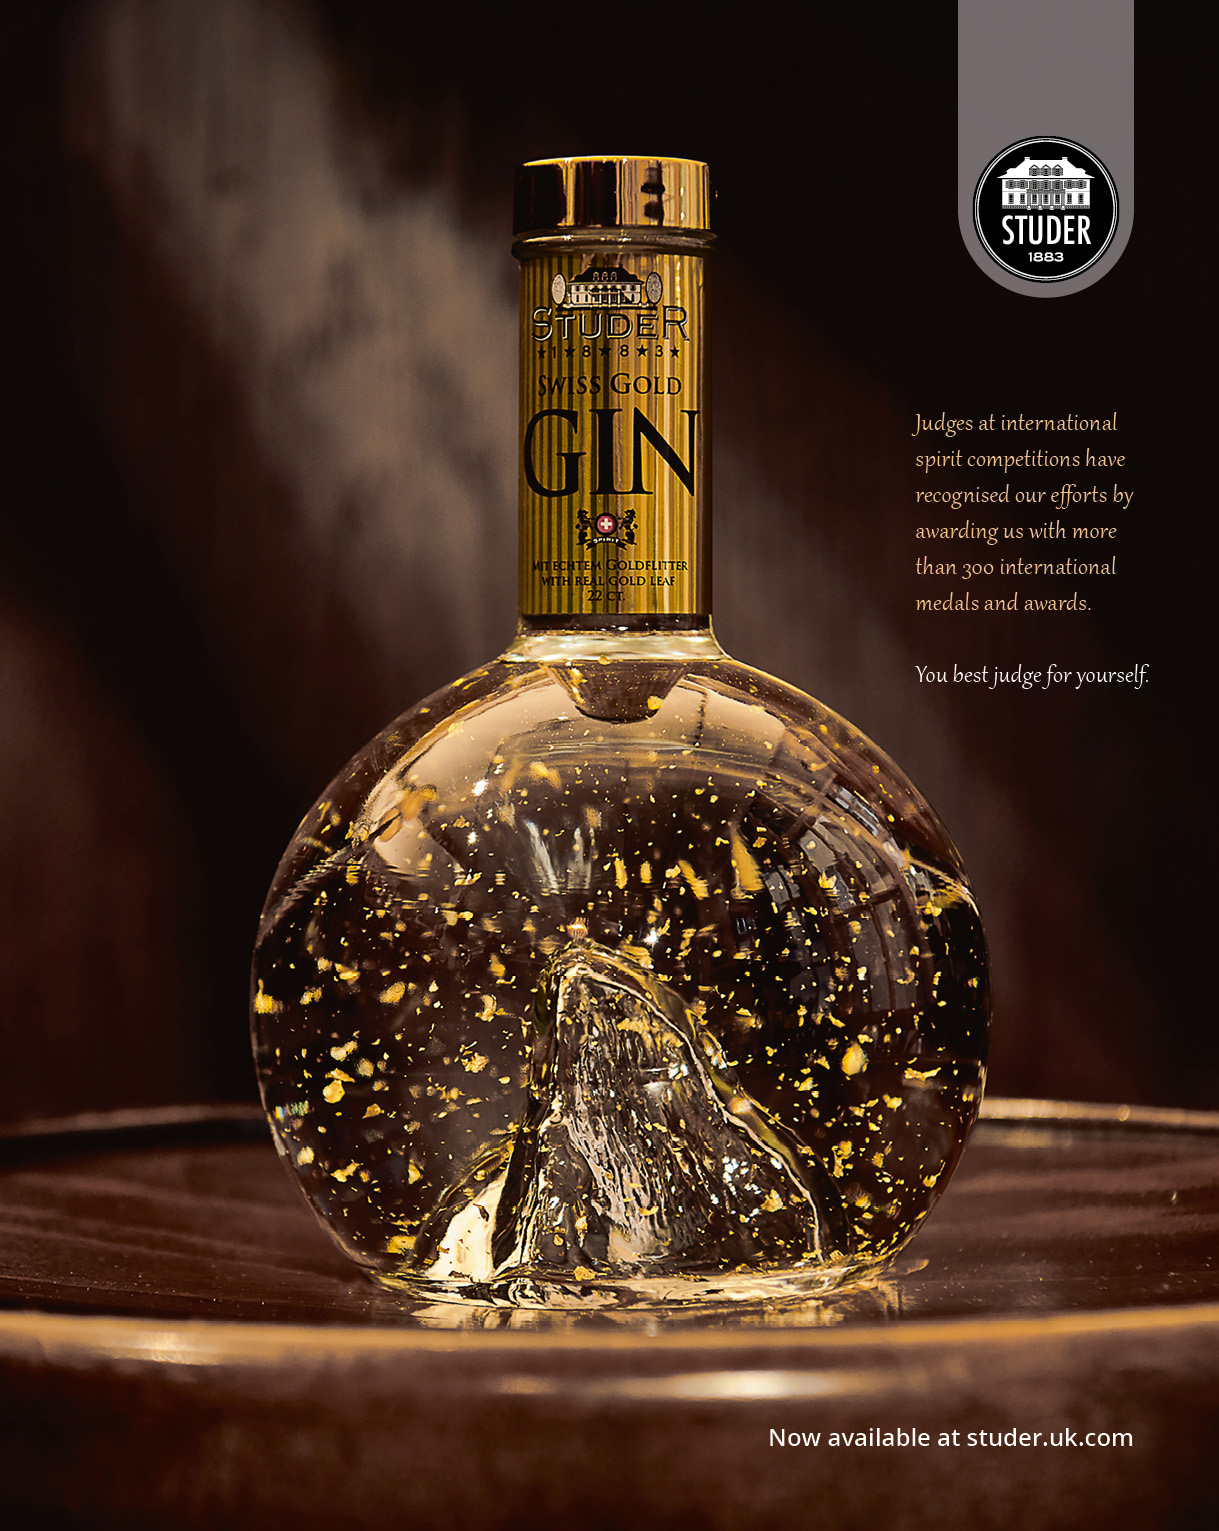 Studer Swiss Gold Gin Ad